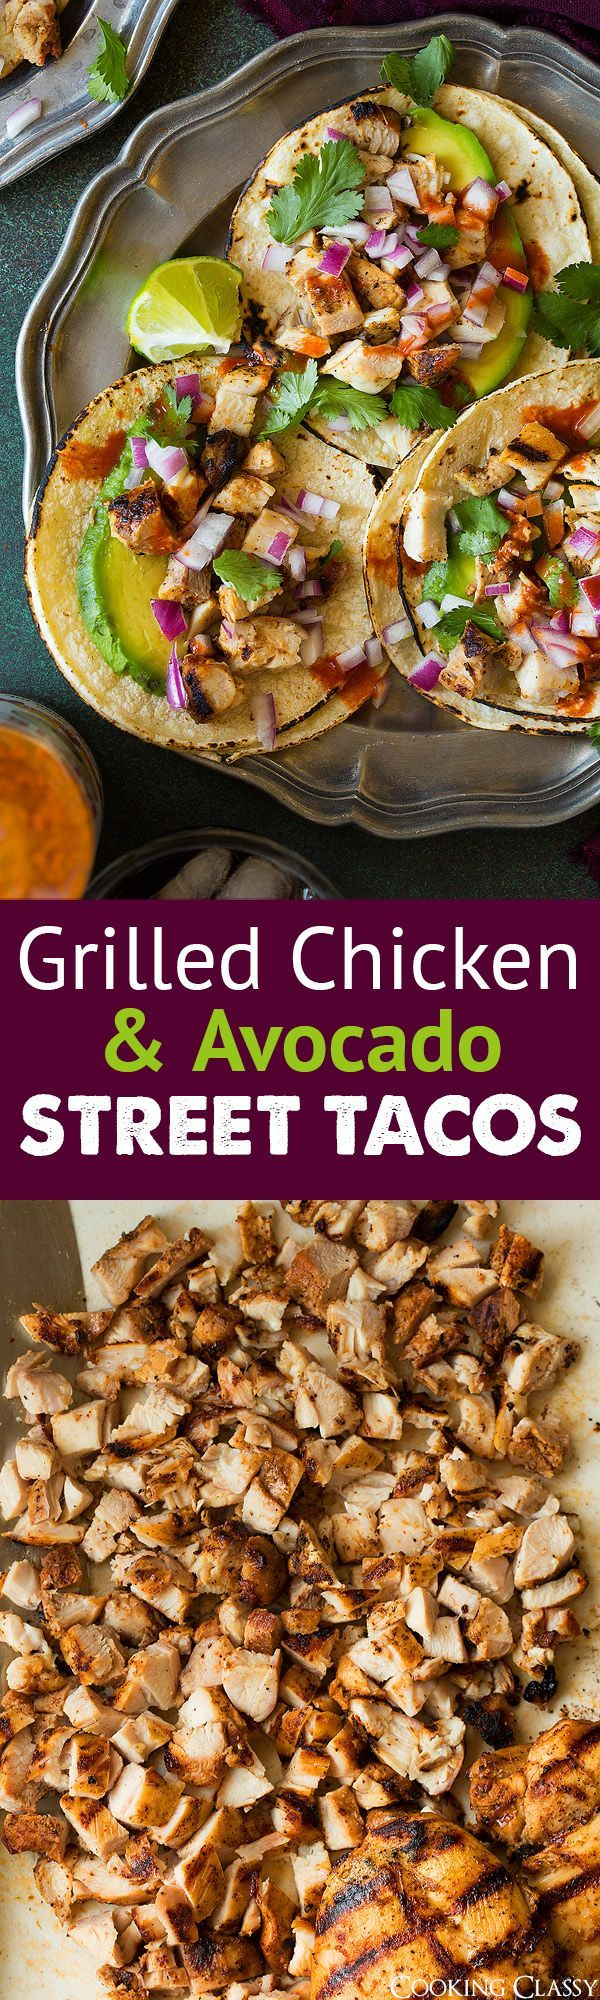 Grilled Chicken and Avocado Street Tacos - Cooking Classy: